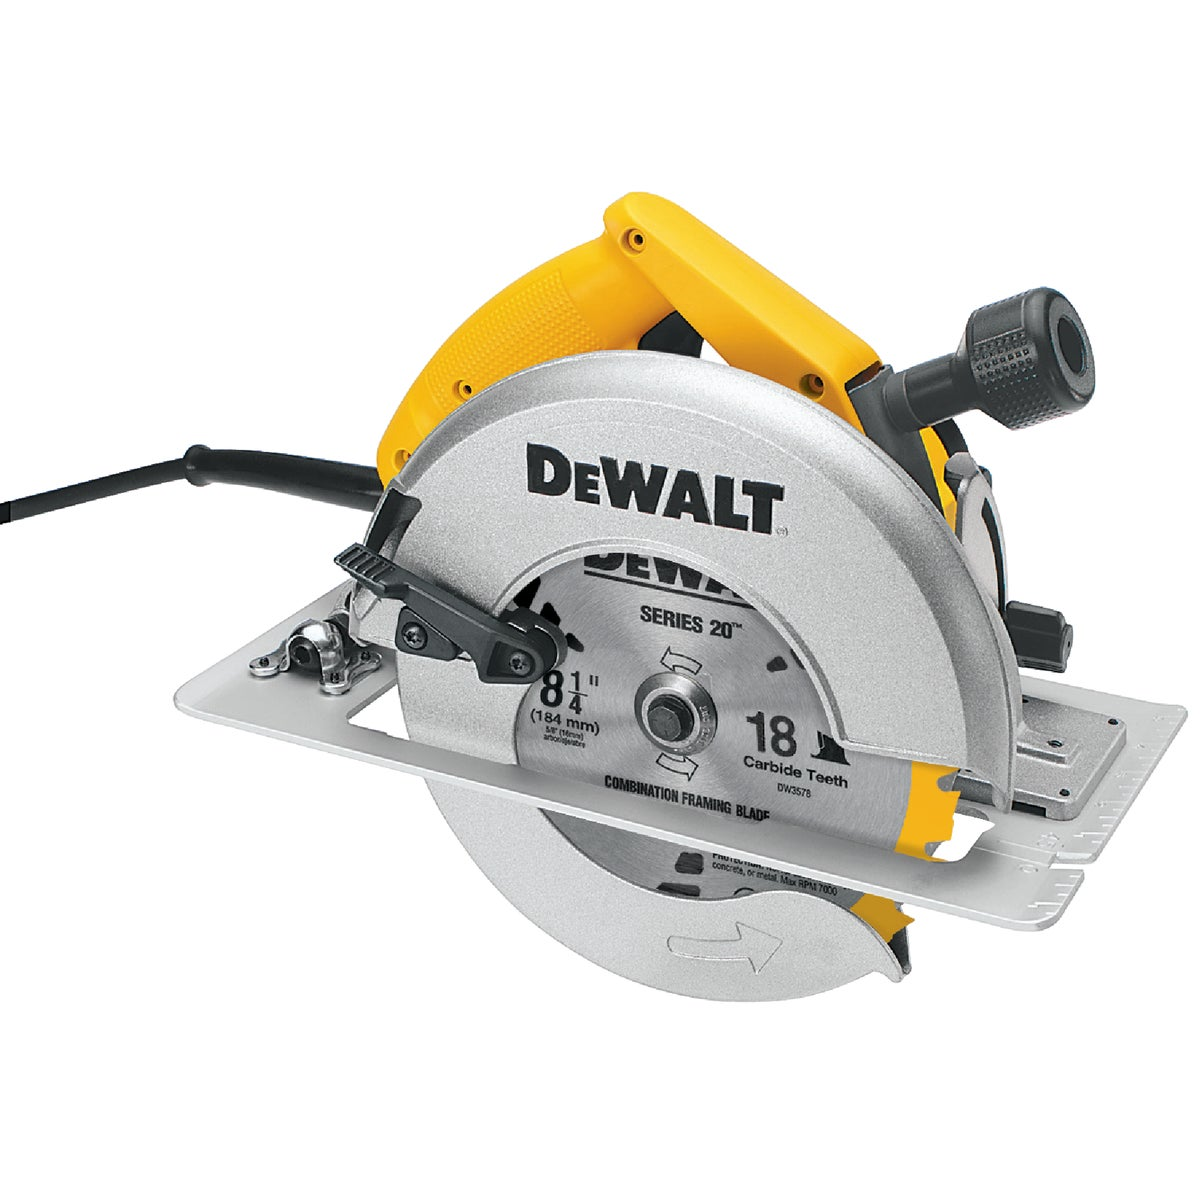 "8-1/4"" 15A CIRCULAR SAW - DW384 by DeWalt"